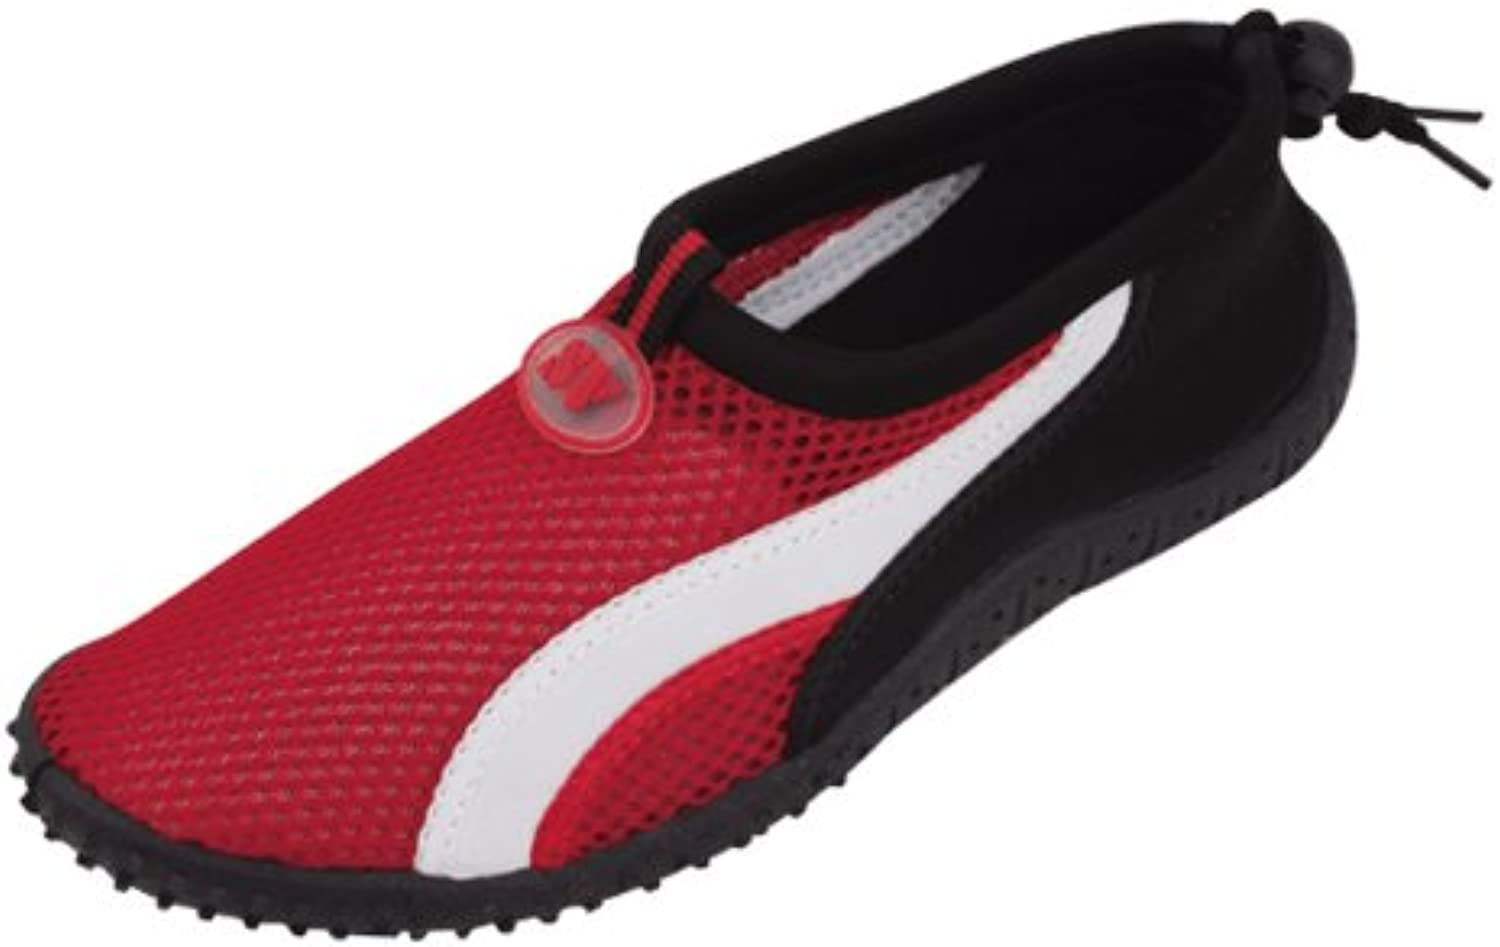 Starbay New Brand Women's Red Athletic Water shoes Aqua Socks with White Streak Size 5